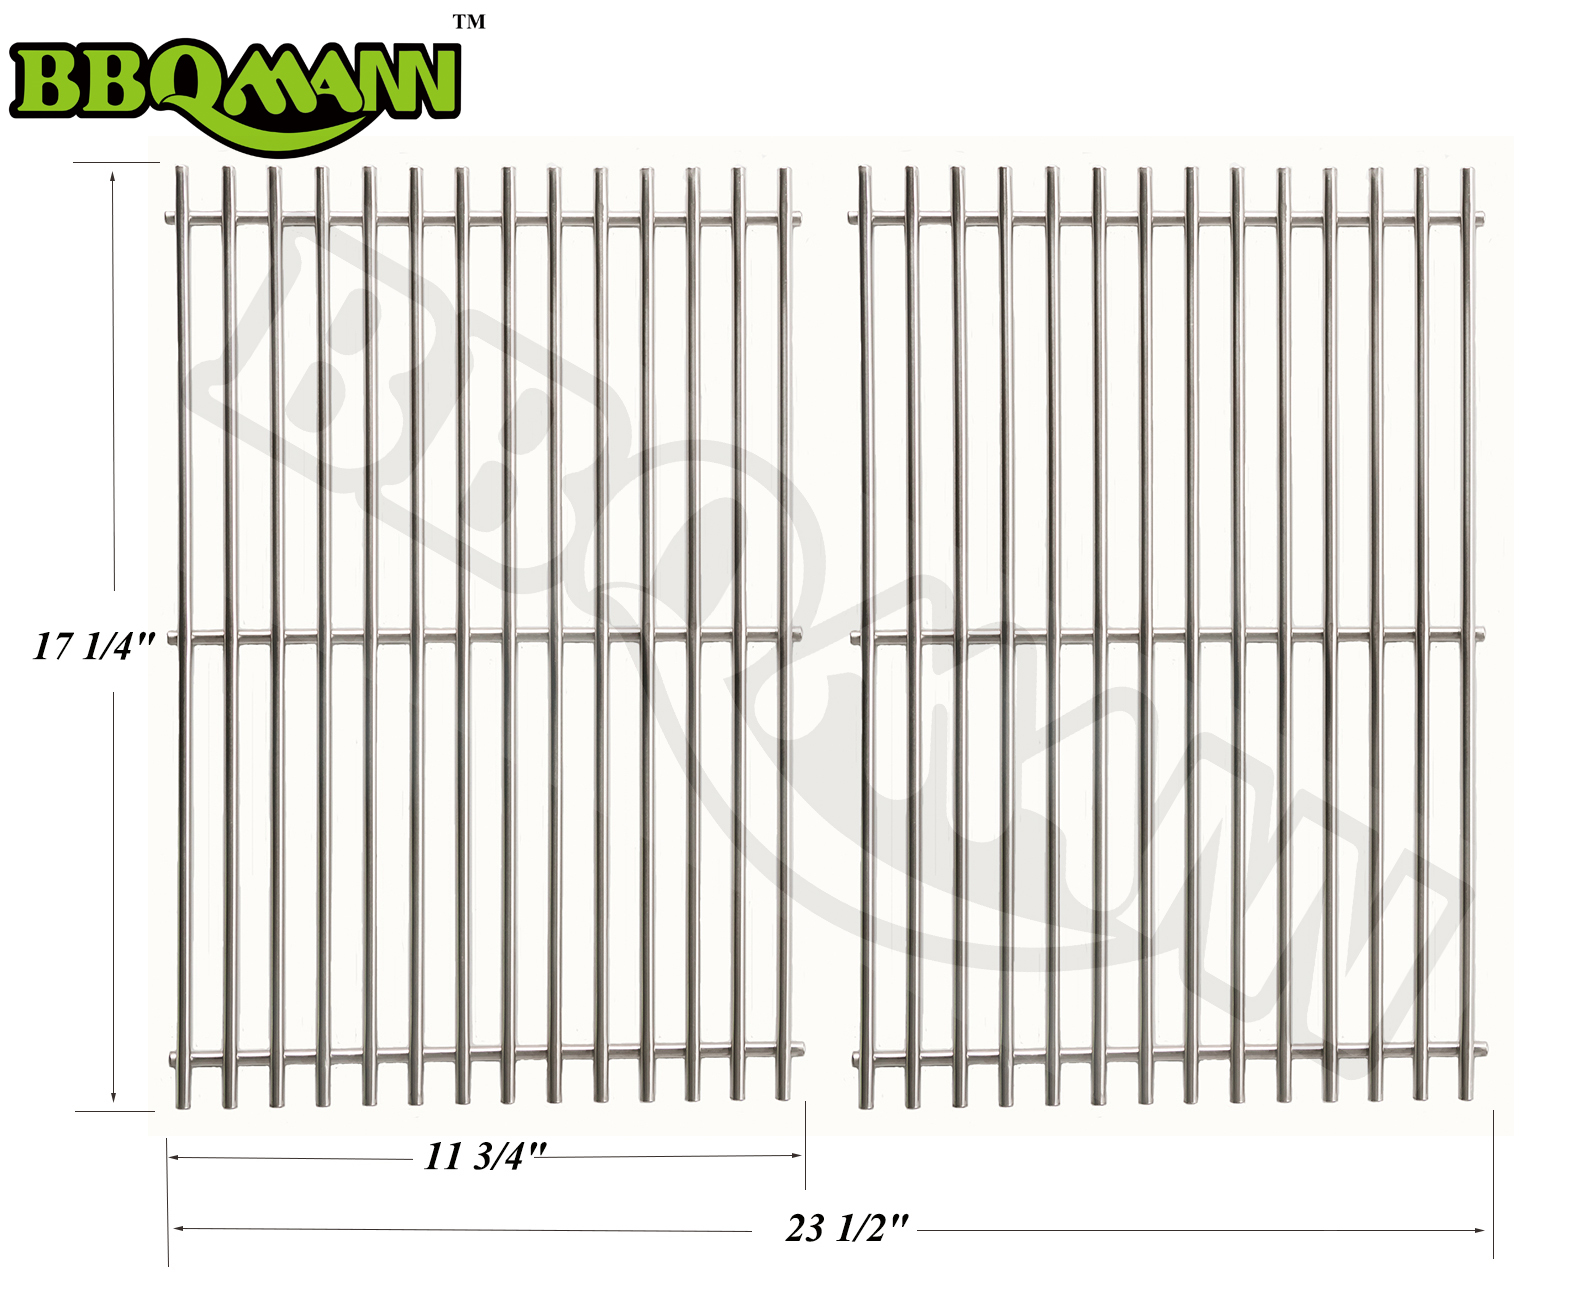 BBQ Stainless Steel Rod Replacement Cooking Grill Grid Grate for